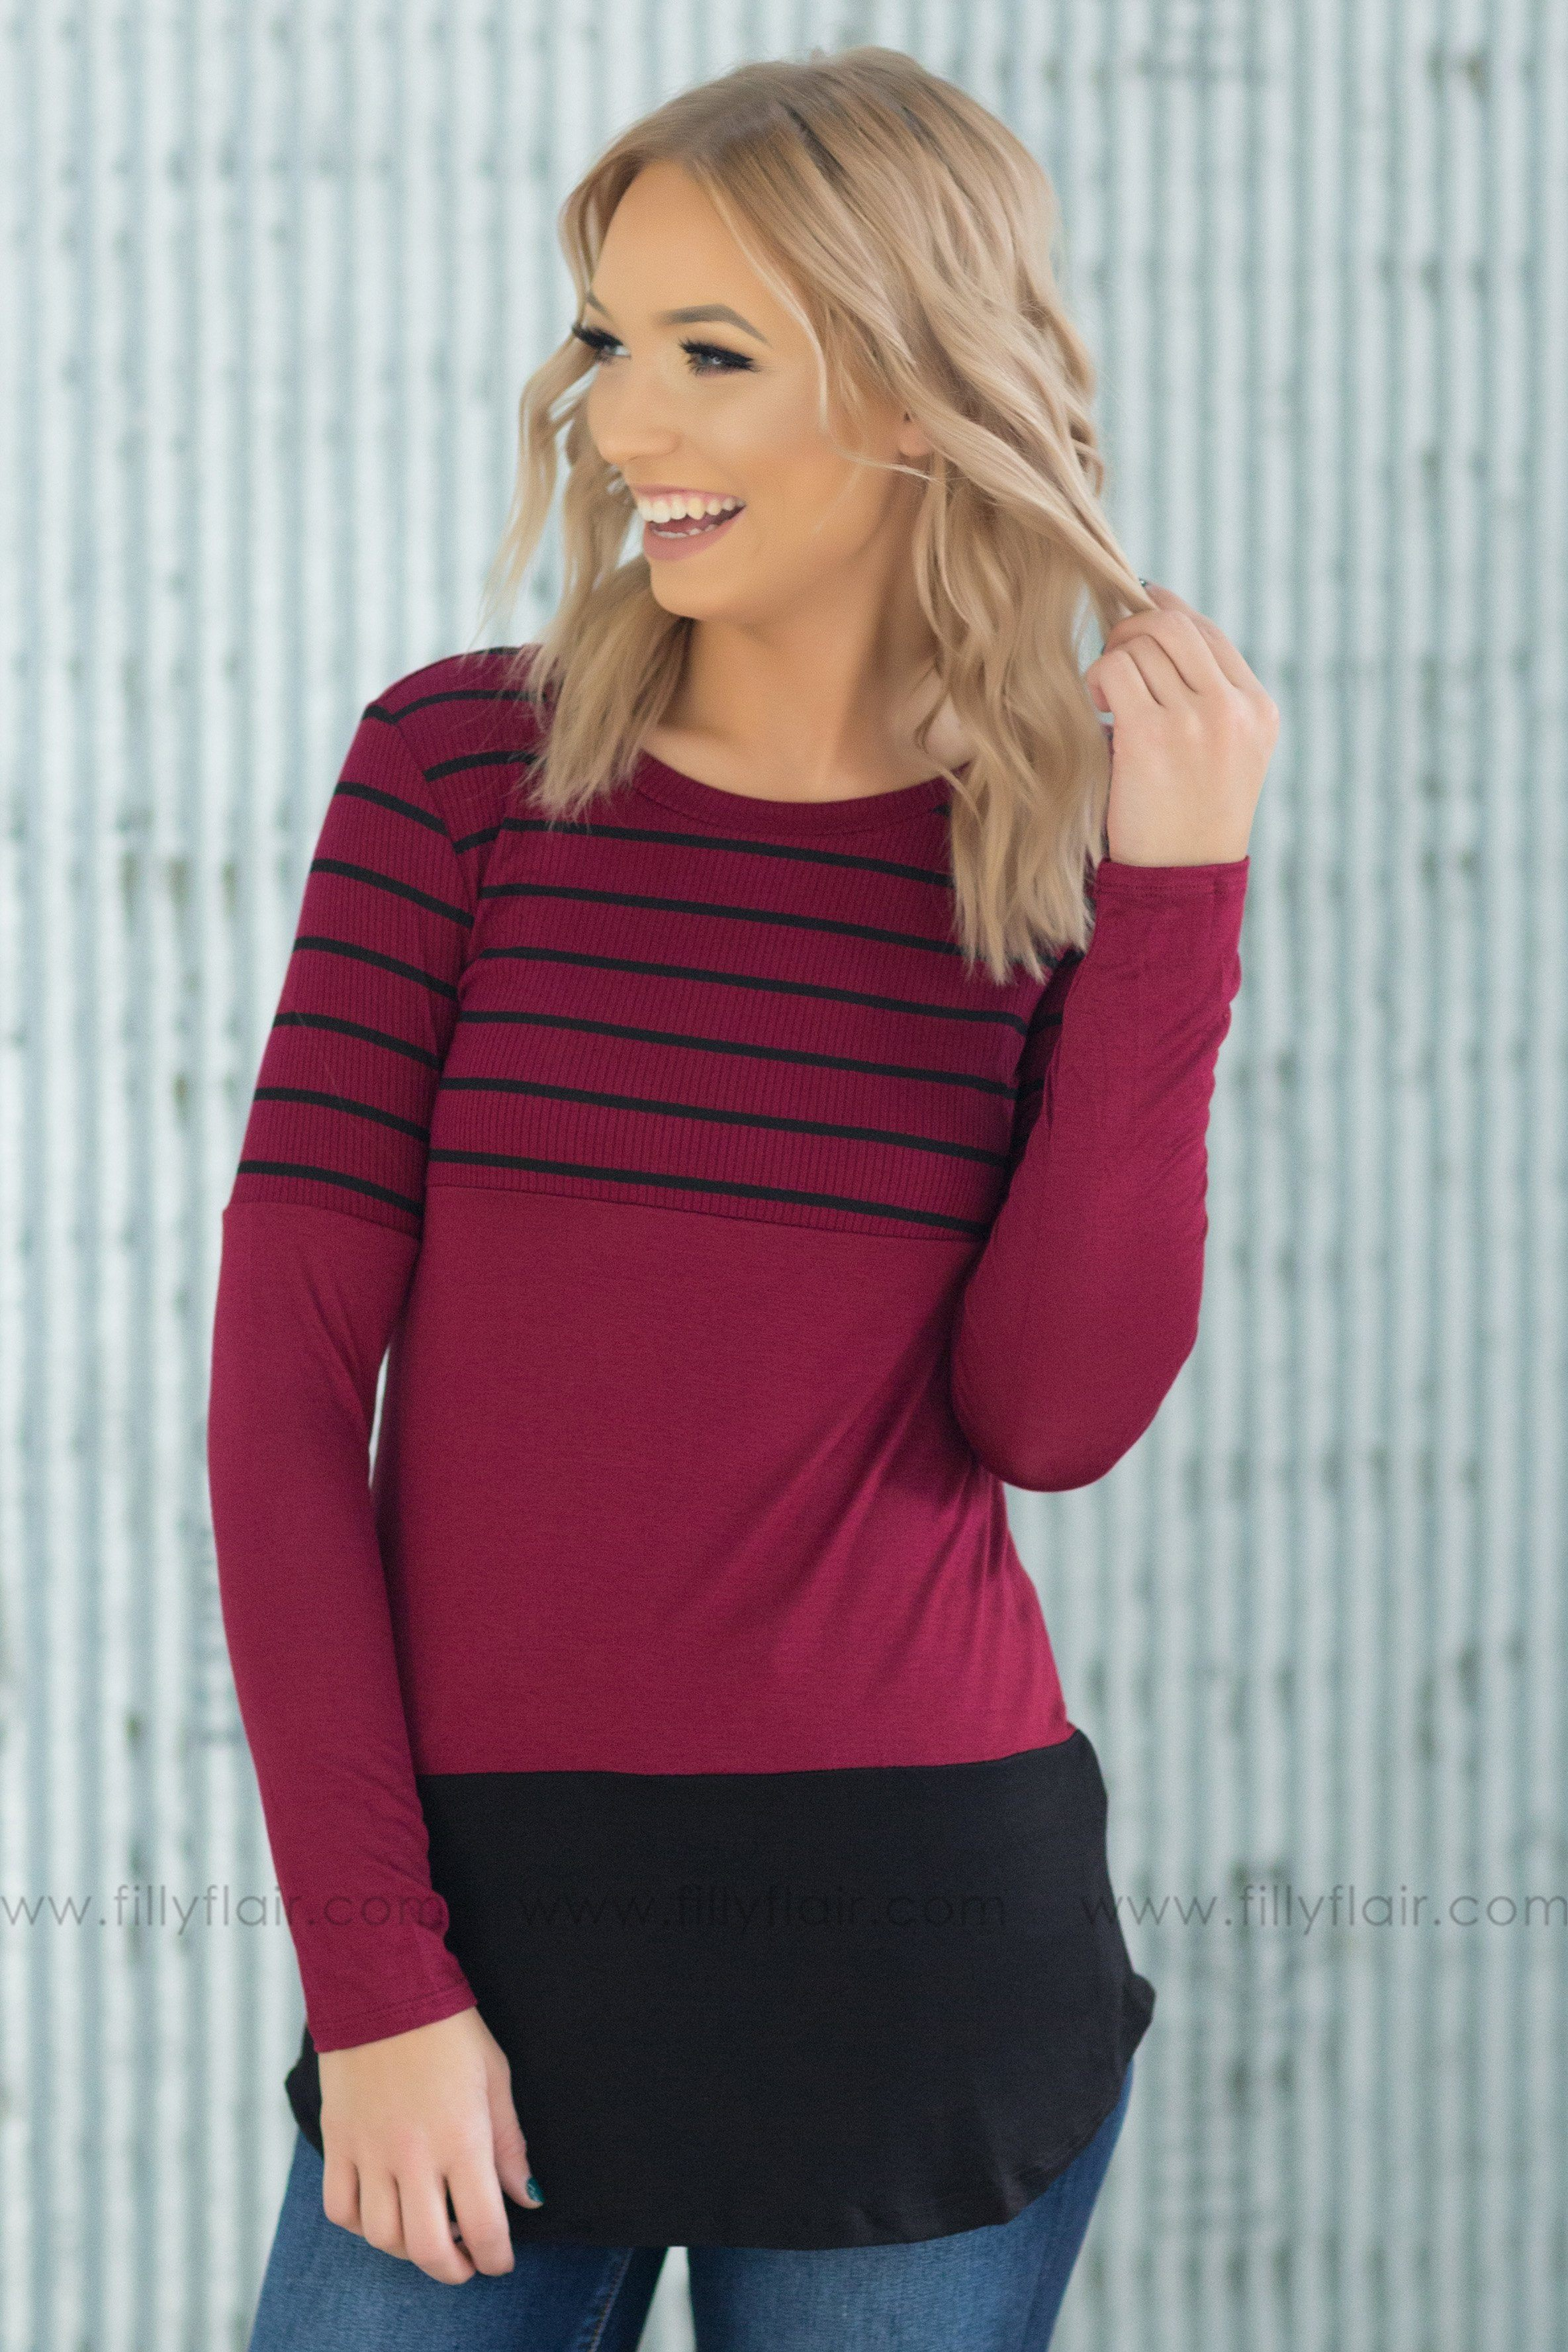 Some Time Ago Striped Color Block Lace Back Top in Burgundy - Filly Flair